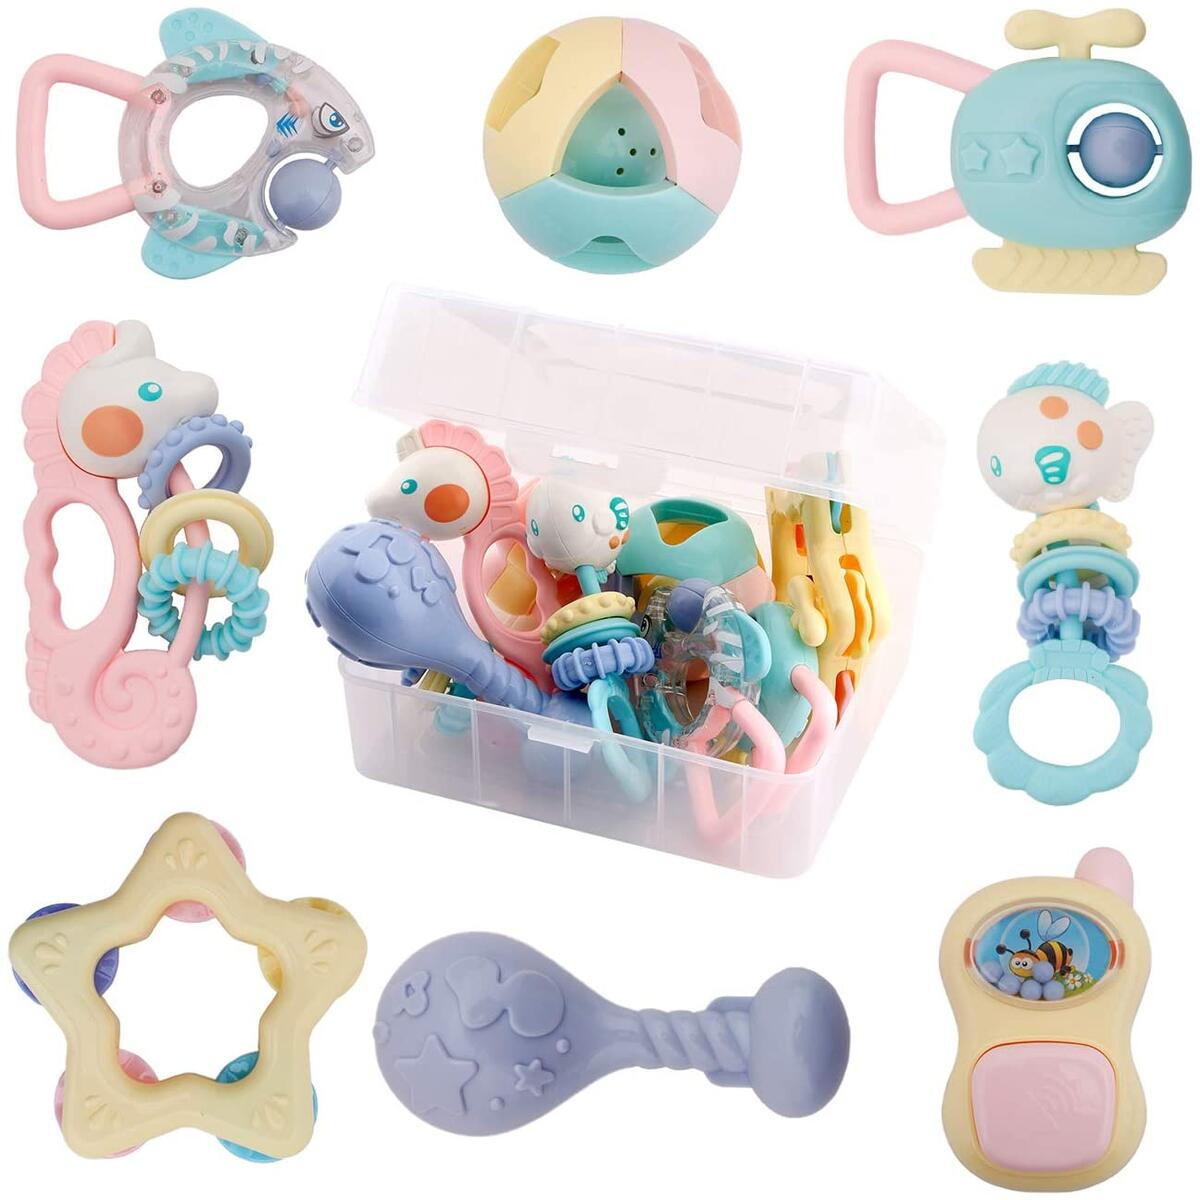 WISHTIME Baby Rattles Teether Baby Toys - 8 Pcs Shaker, Grab and Spin Rattle, Musical Toy Set, Early Educational Toys for Baby Infant, Newborn